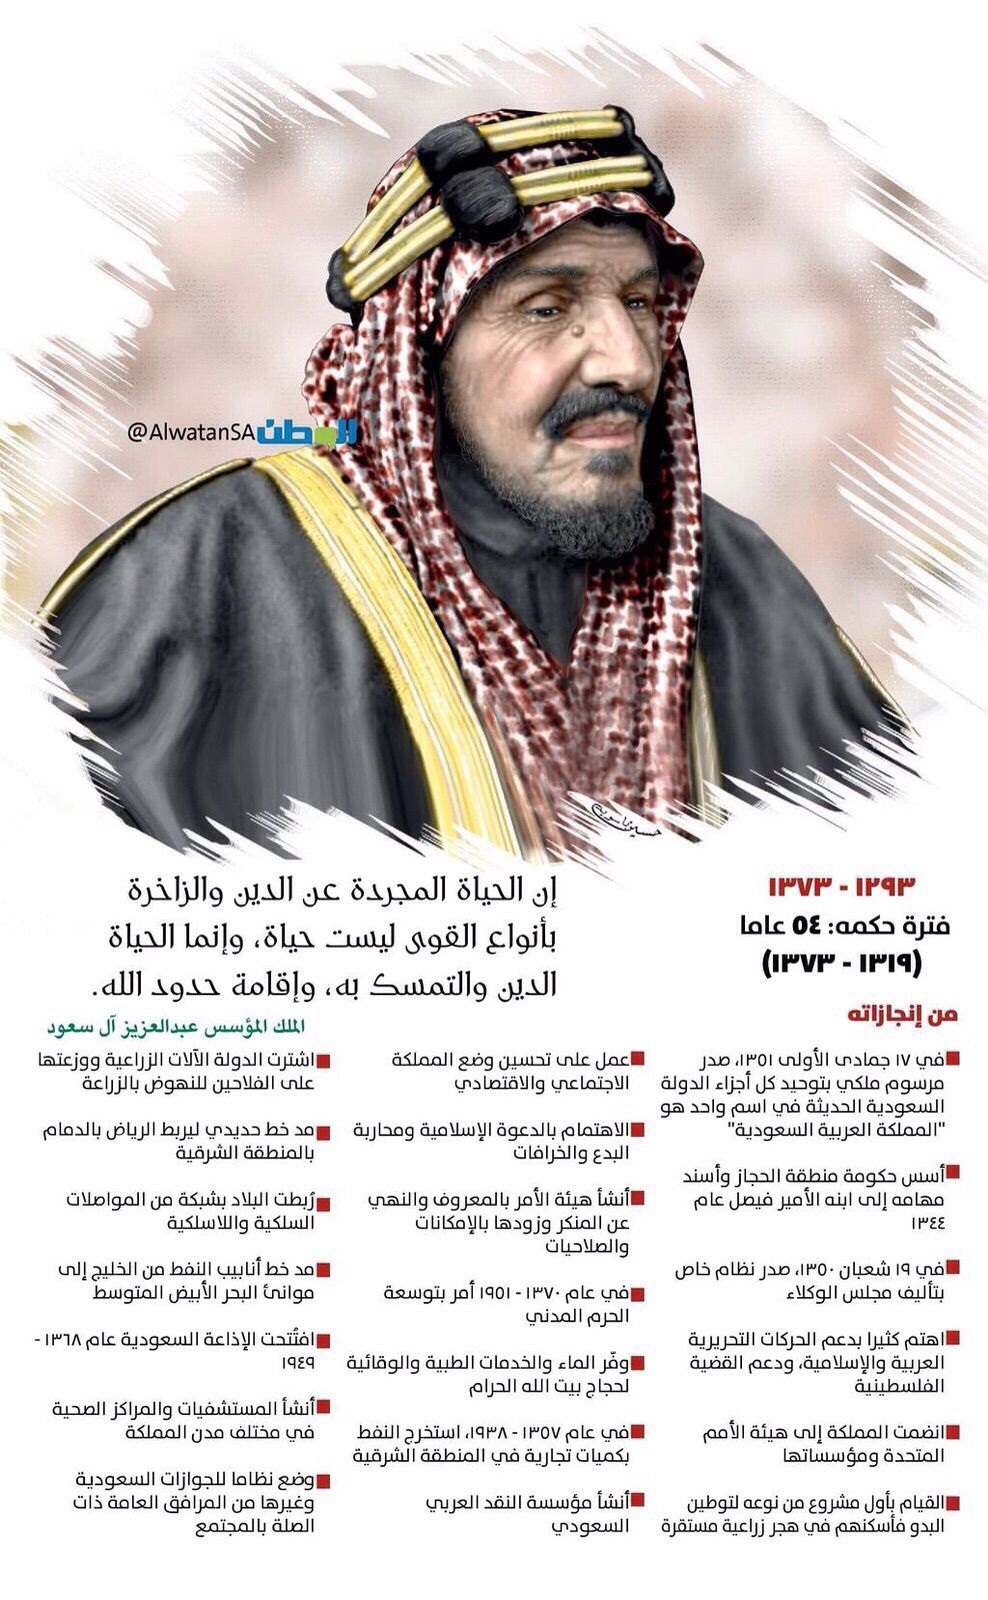 Pin By Shaima456 On Saudi Arabia المملكة العربية السعودية National Day Saudi Saudi Men King Salman Saudi Arabia